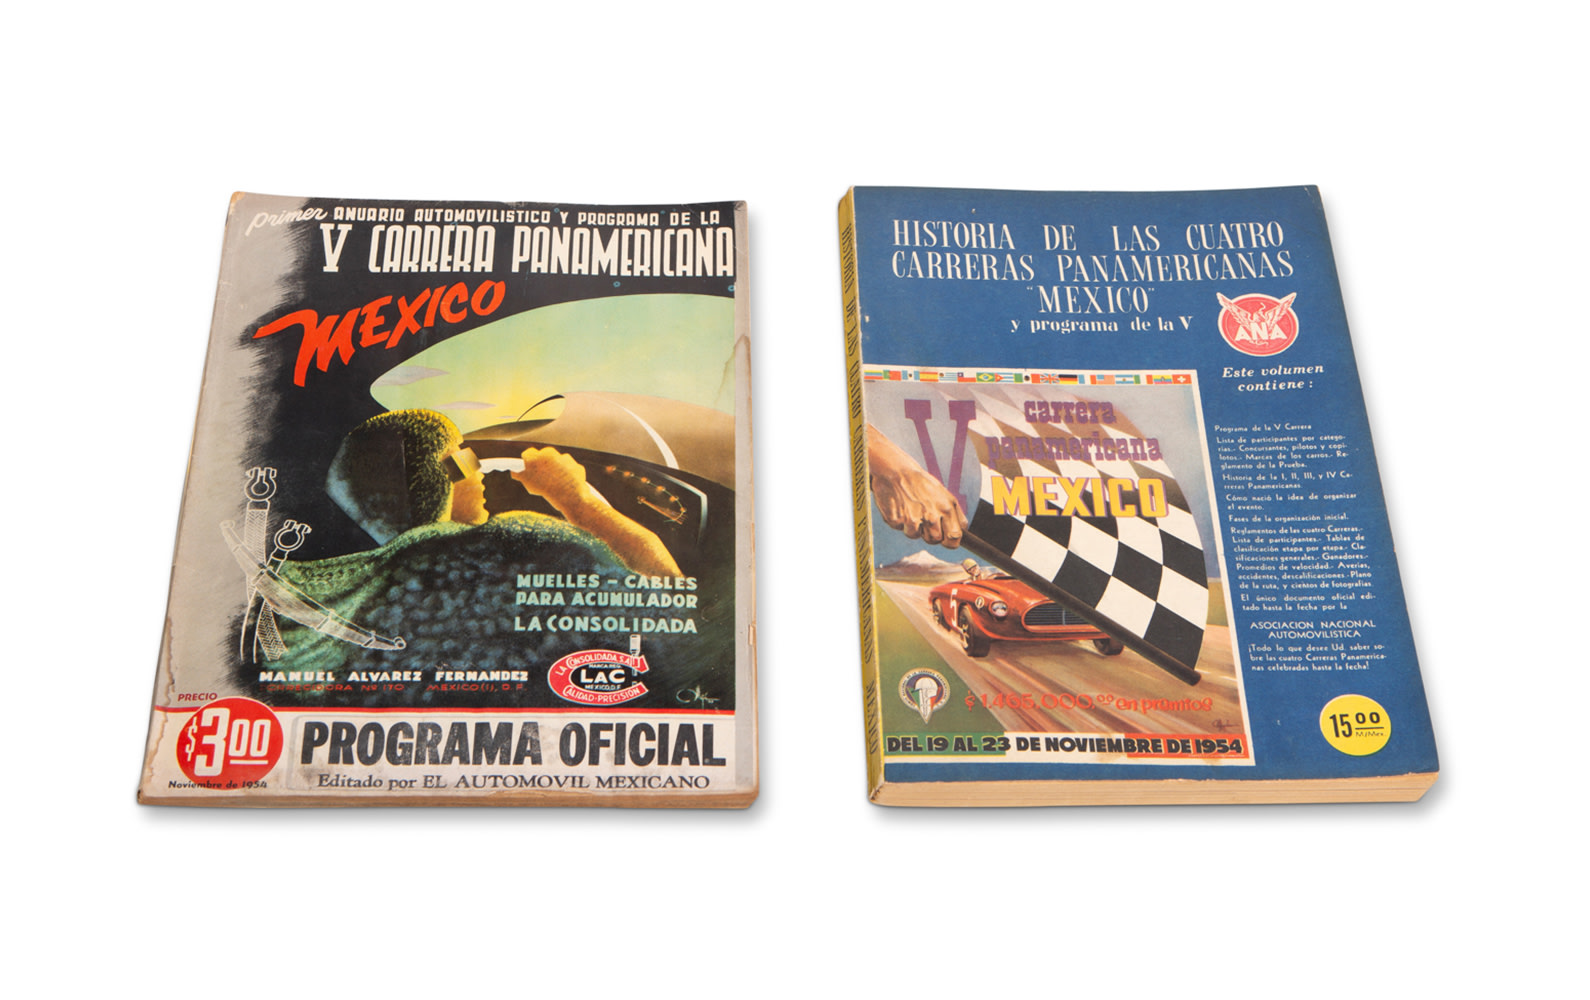 1954 Carrera Panamerica Official Race Program and Event History Book